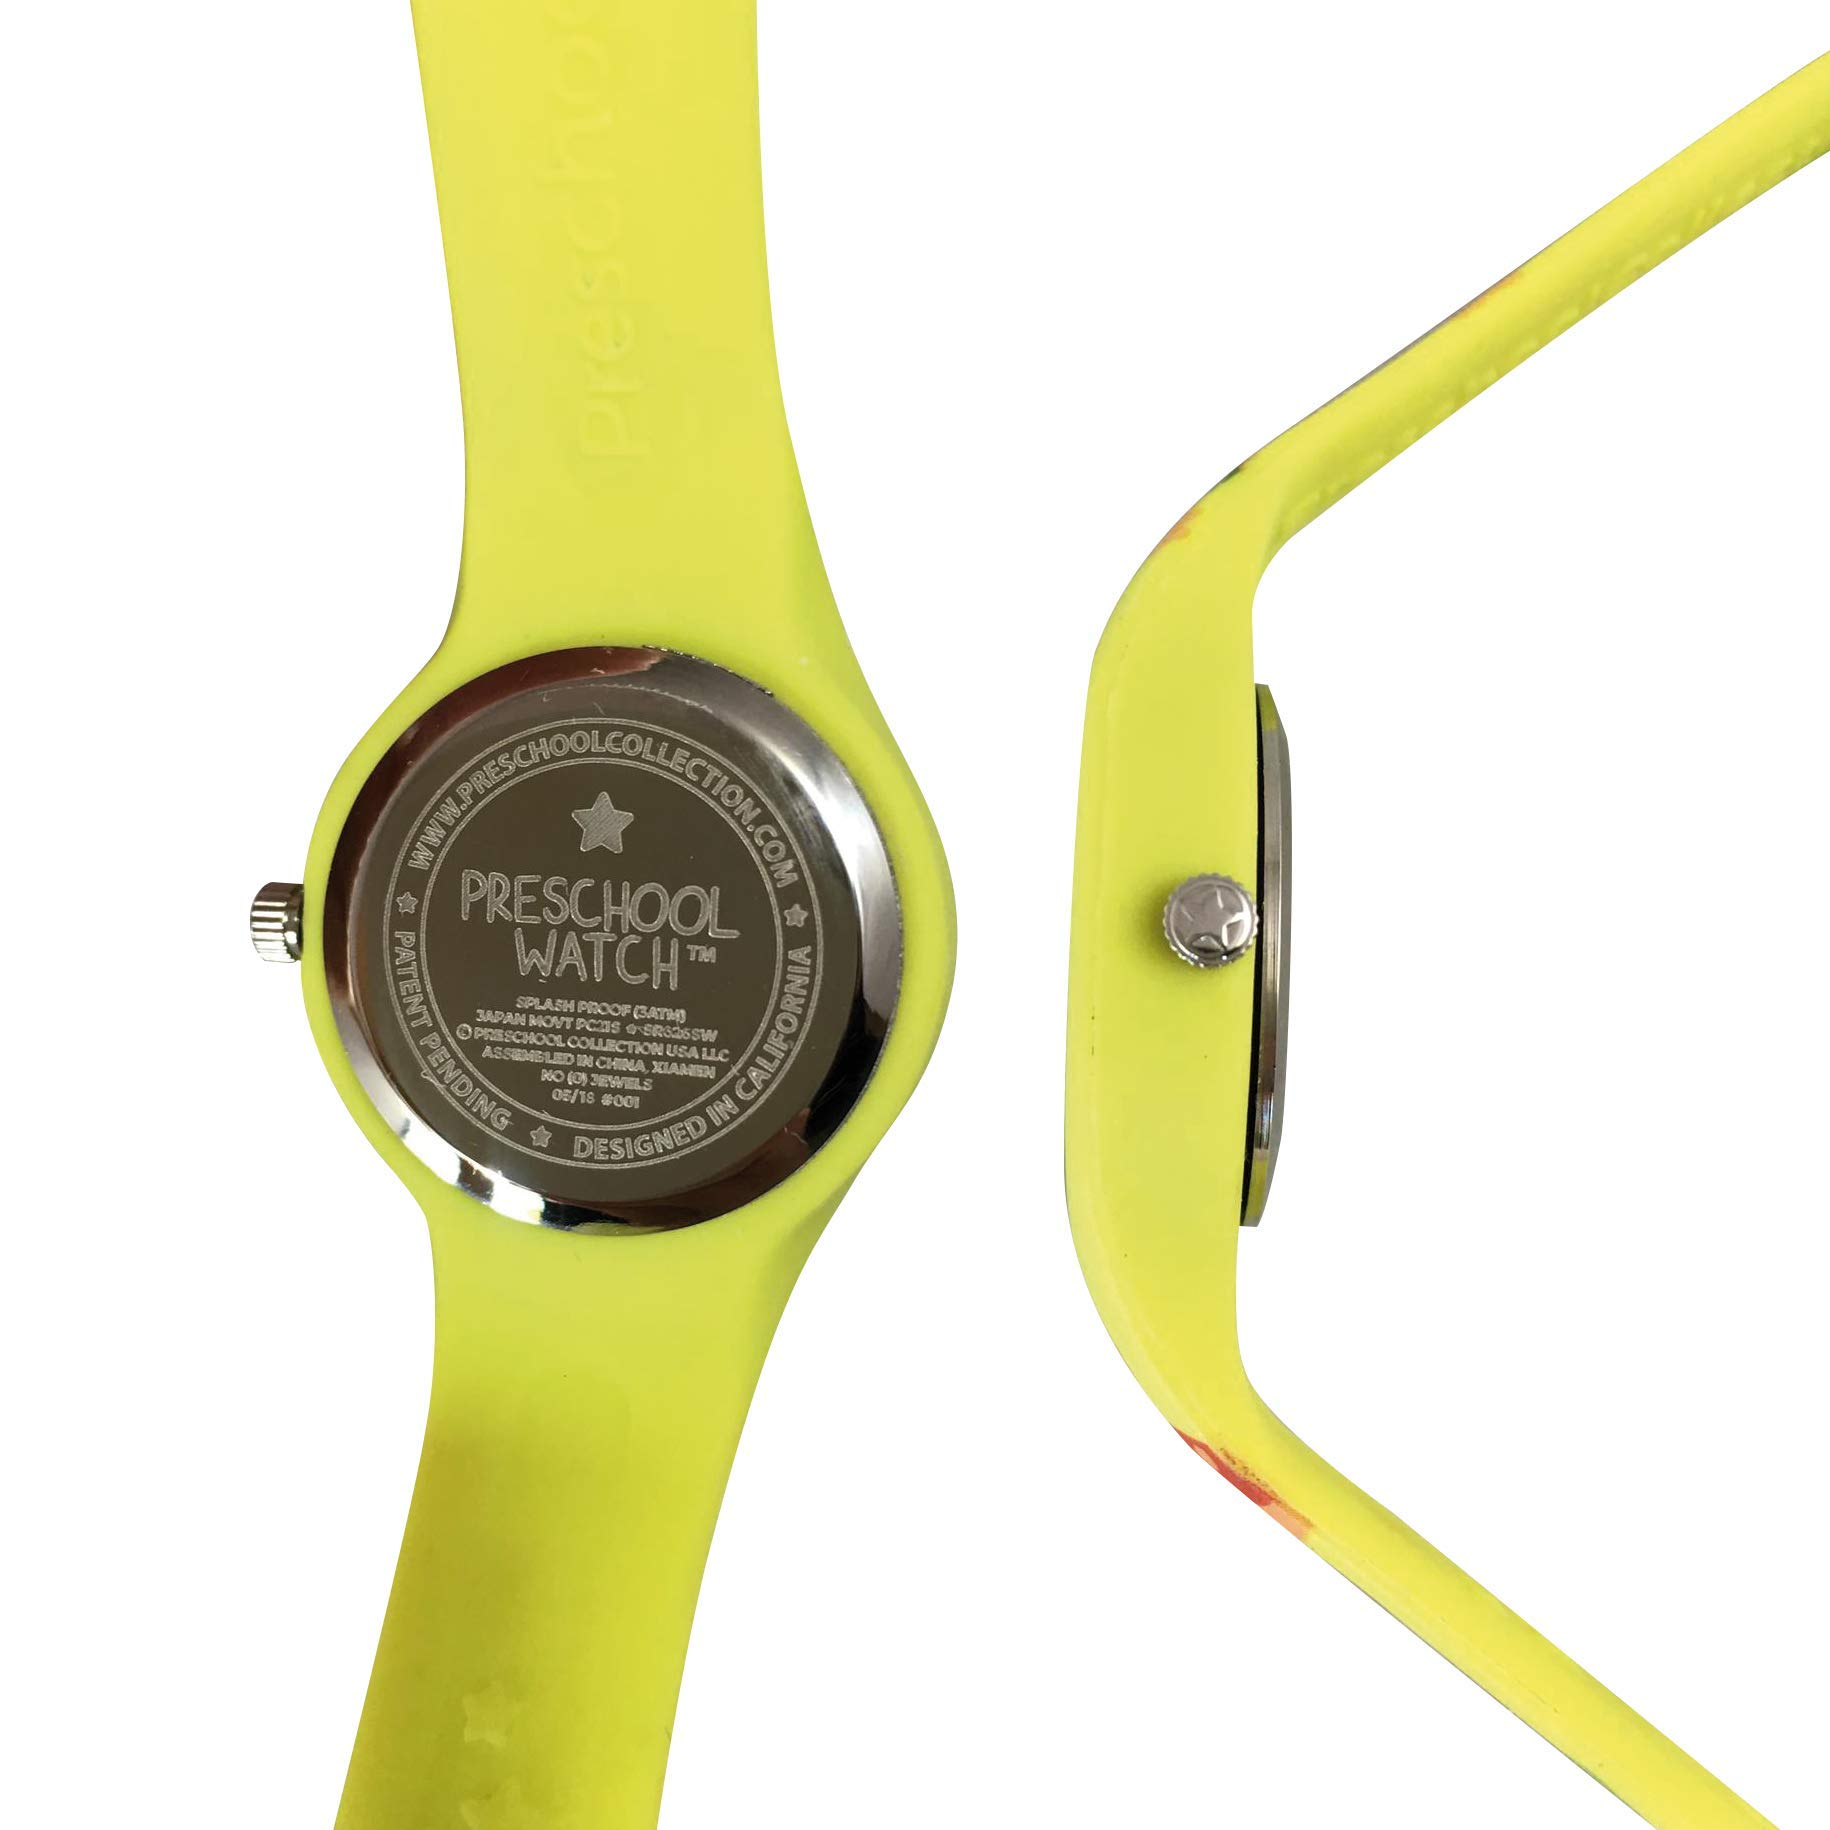 Dinosaur Preschool Watch - The Only Analog Kids Watch Preschoolers Understand! Quality Teaching time Silicone Watch with Glow-in-The-Dark Dial & Japan Movement by PRESCHOOL COLLECTION (Image #4)